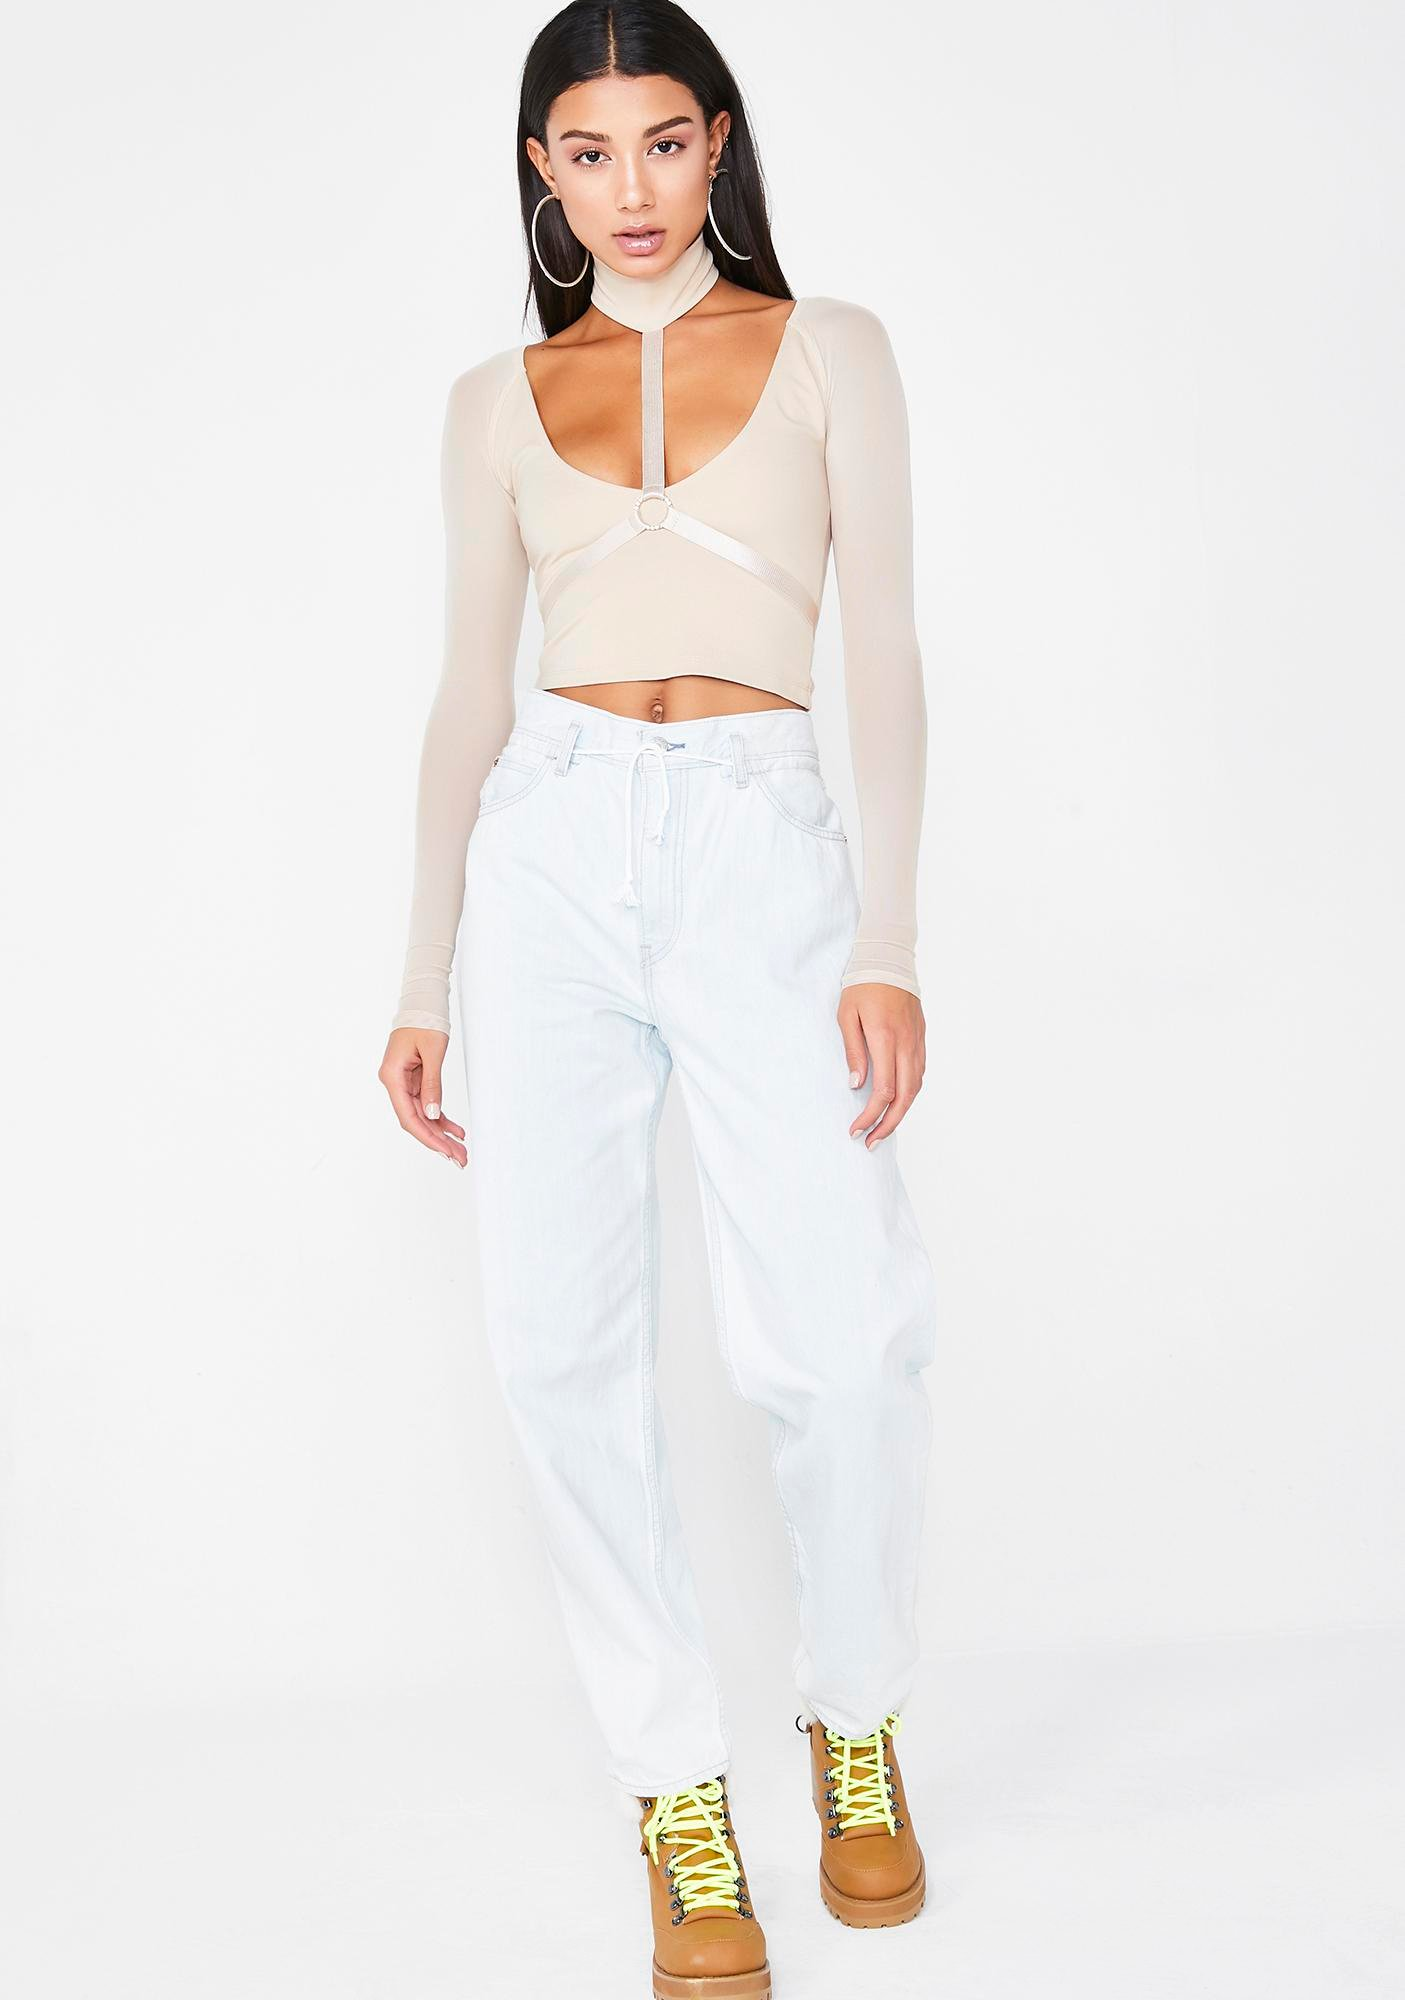 Poster Grl Body Party Harness Top